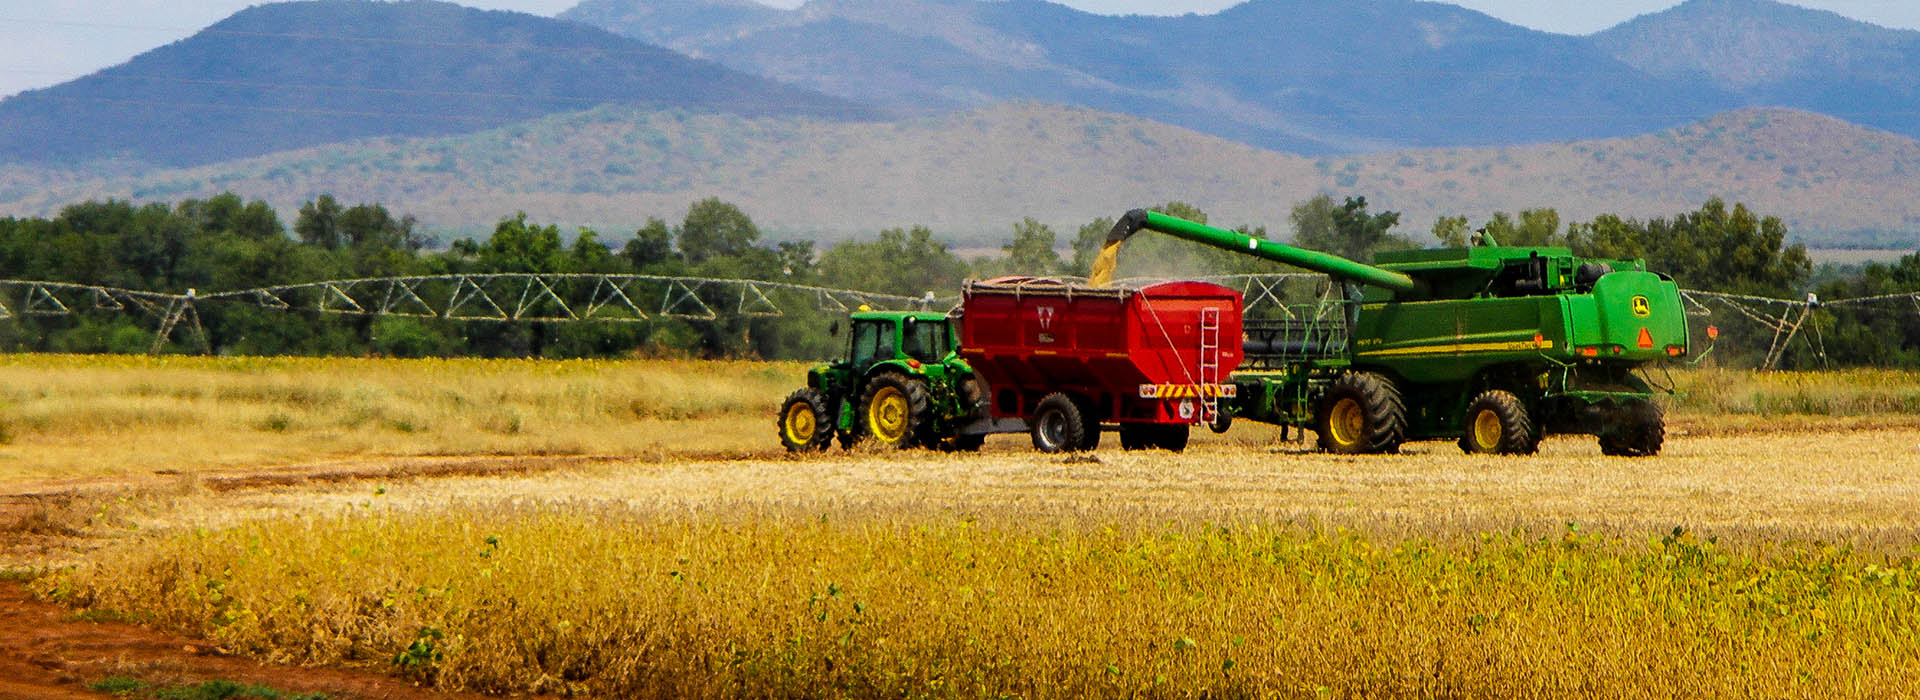 South_Africa_-_Harvesting_-_001